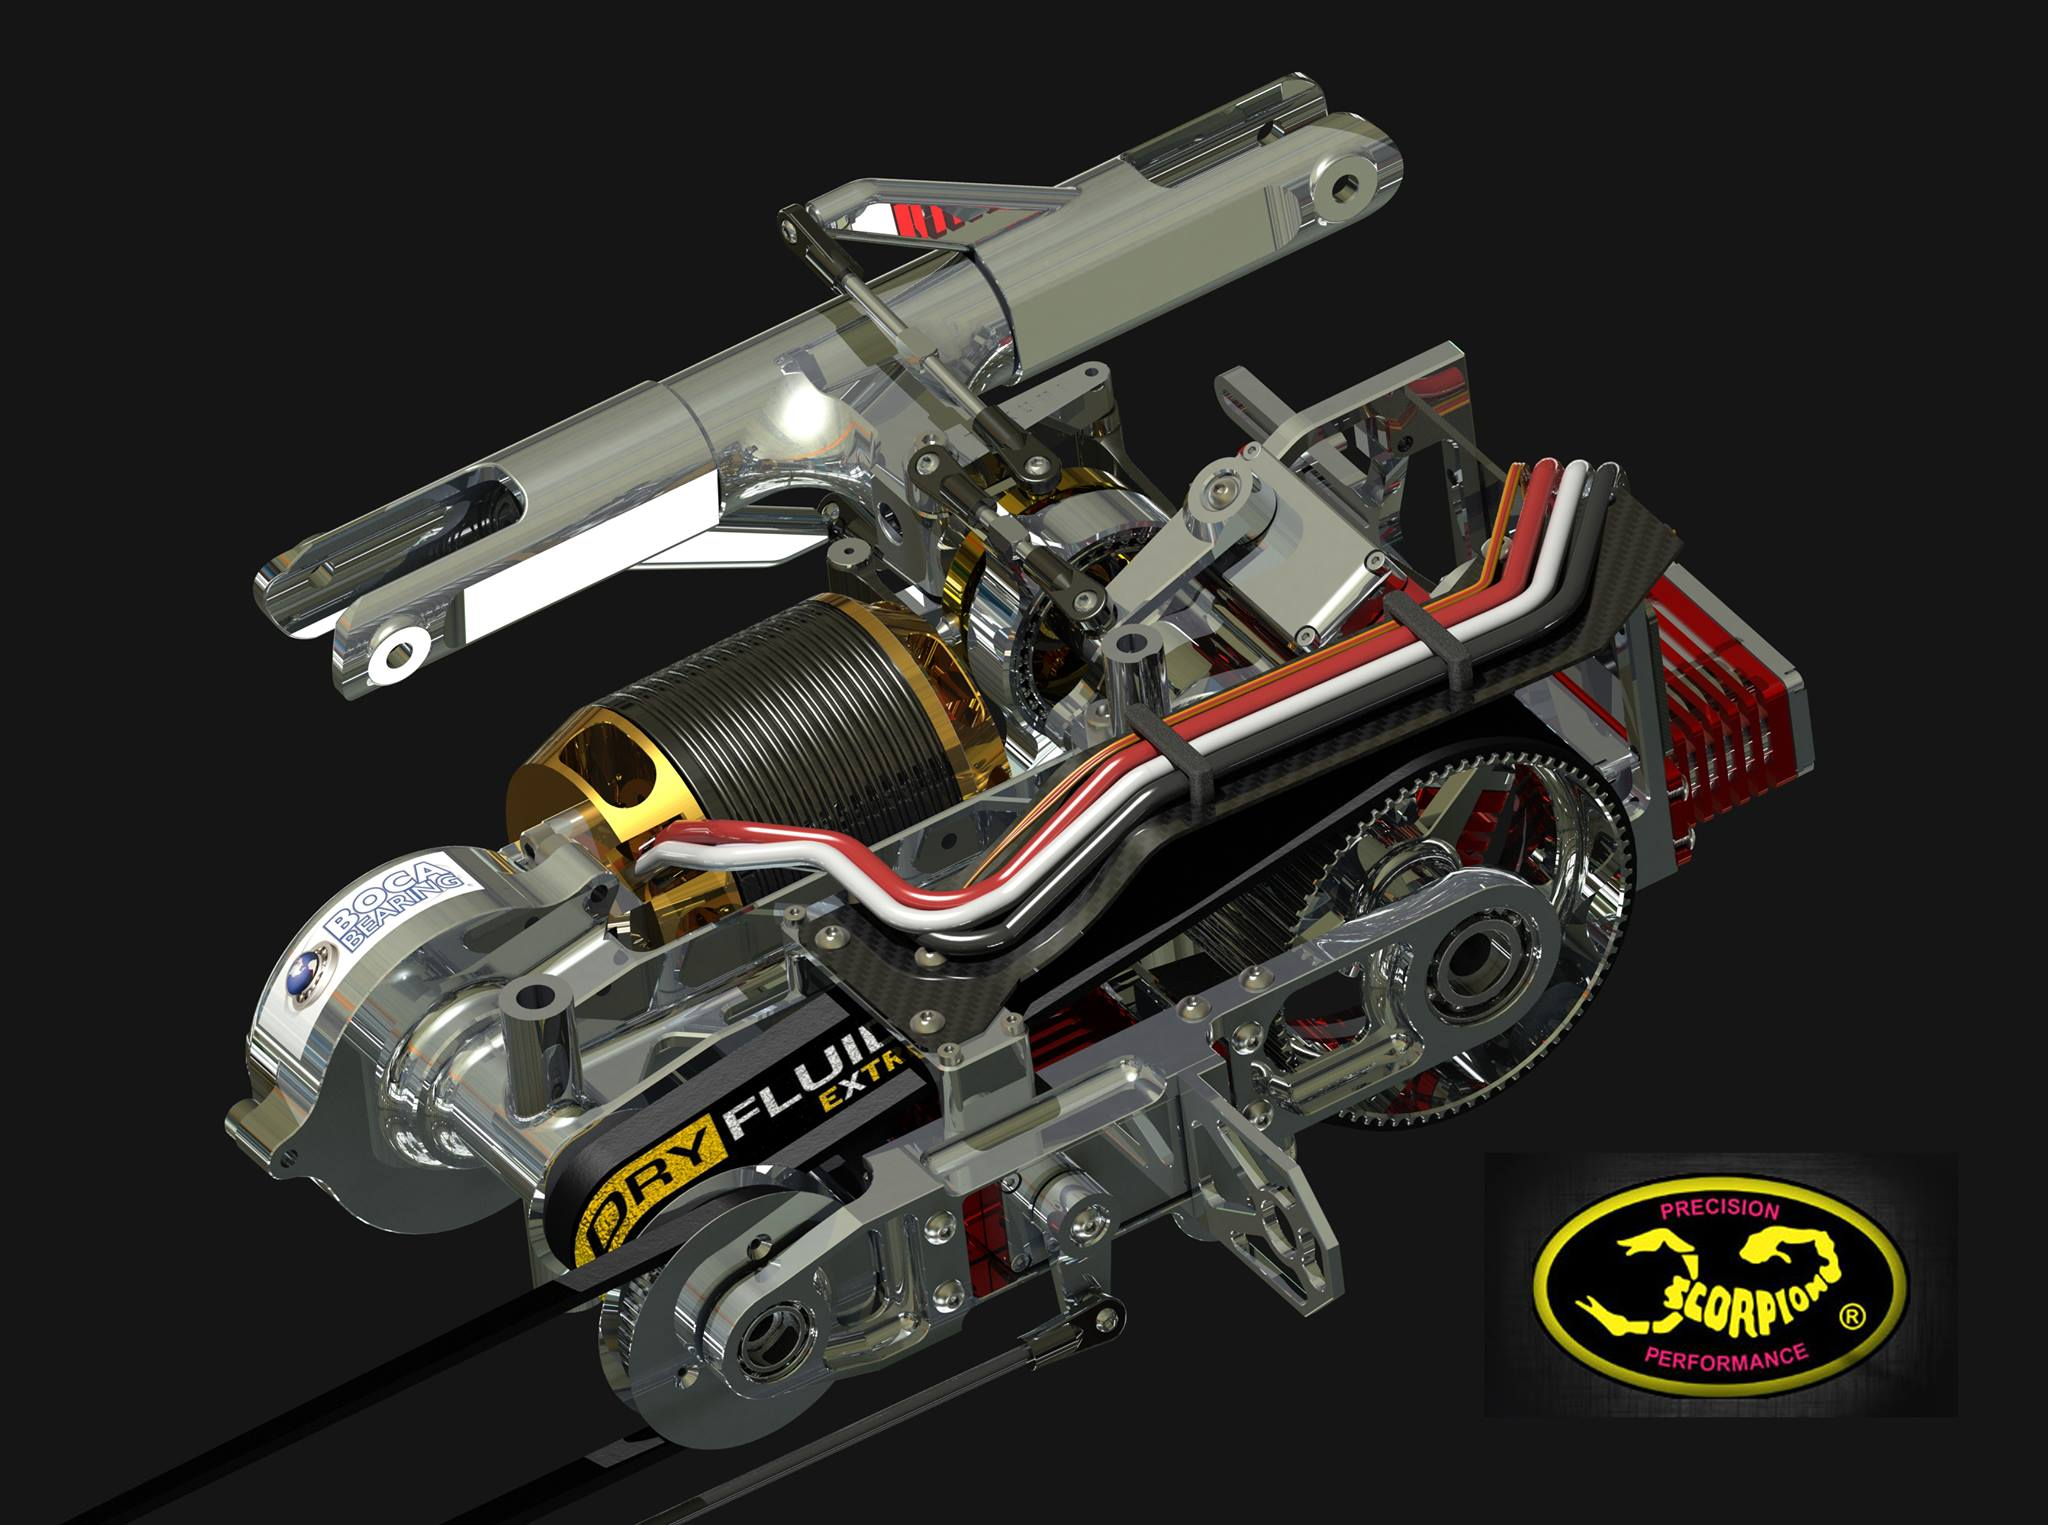 Oil Change Special >> Takumi Helicopter | Scorpion Power System Blog